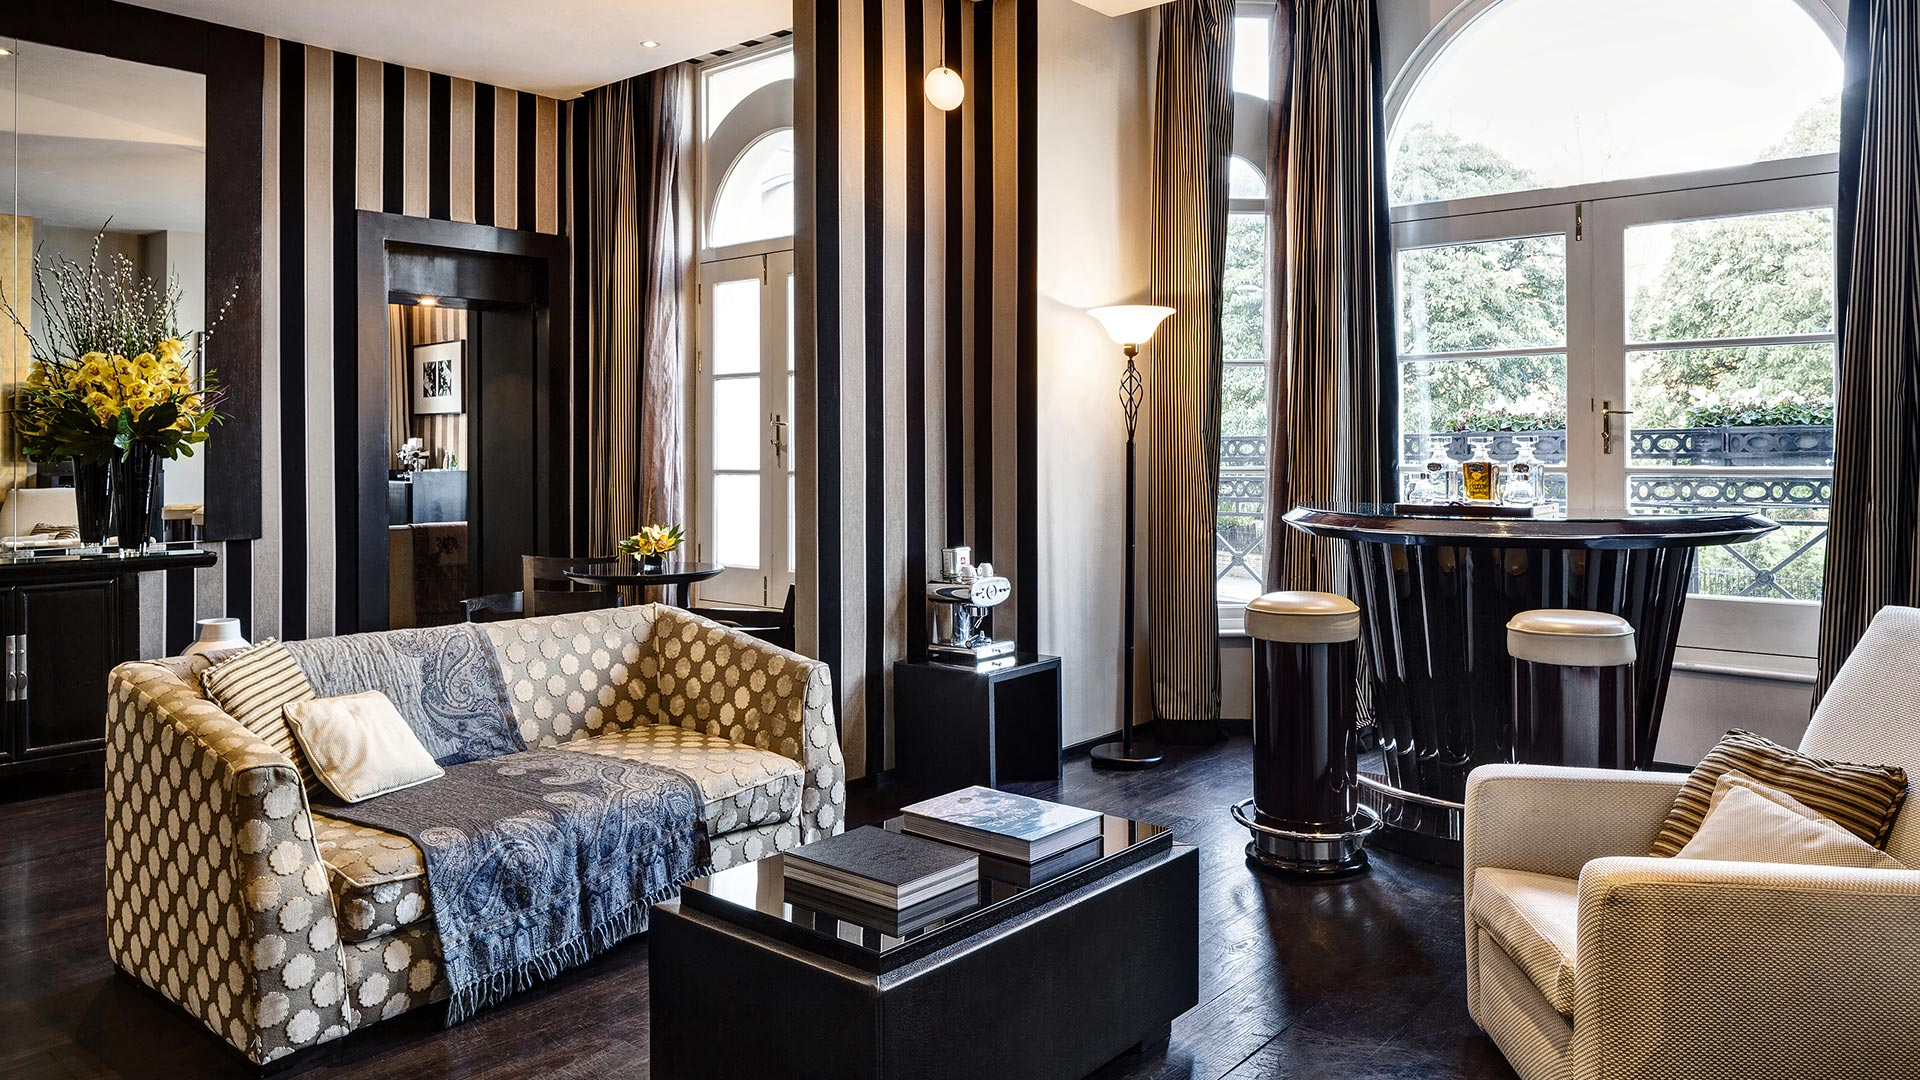 Suite overlooking Kensington Gardens Baglioni Hotel London